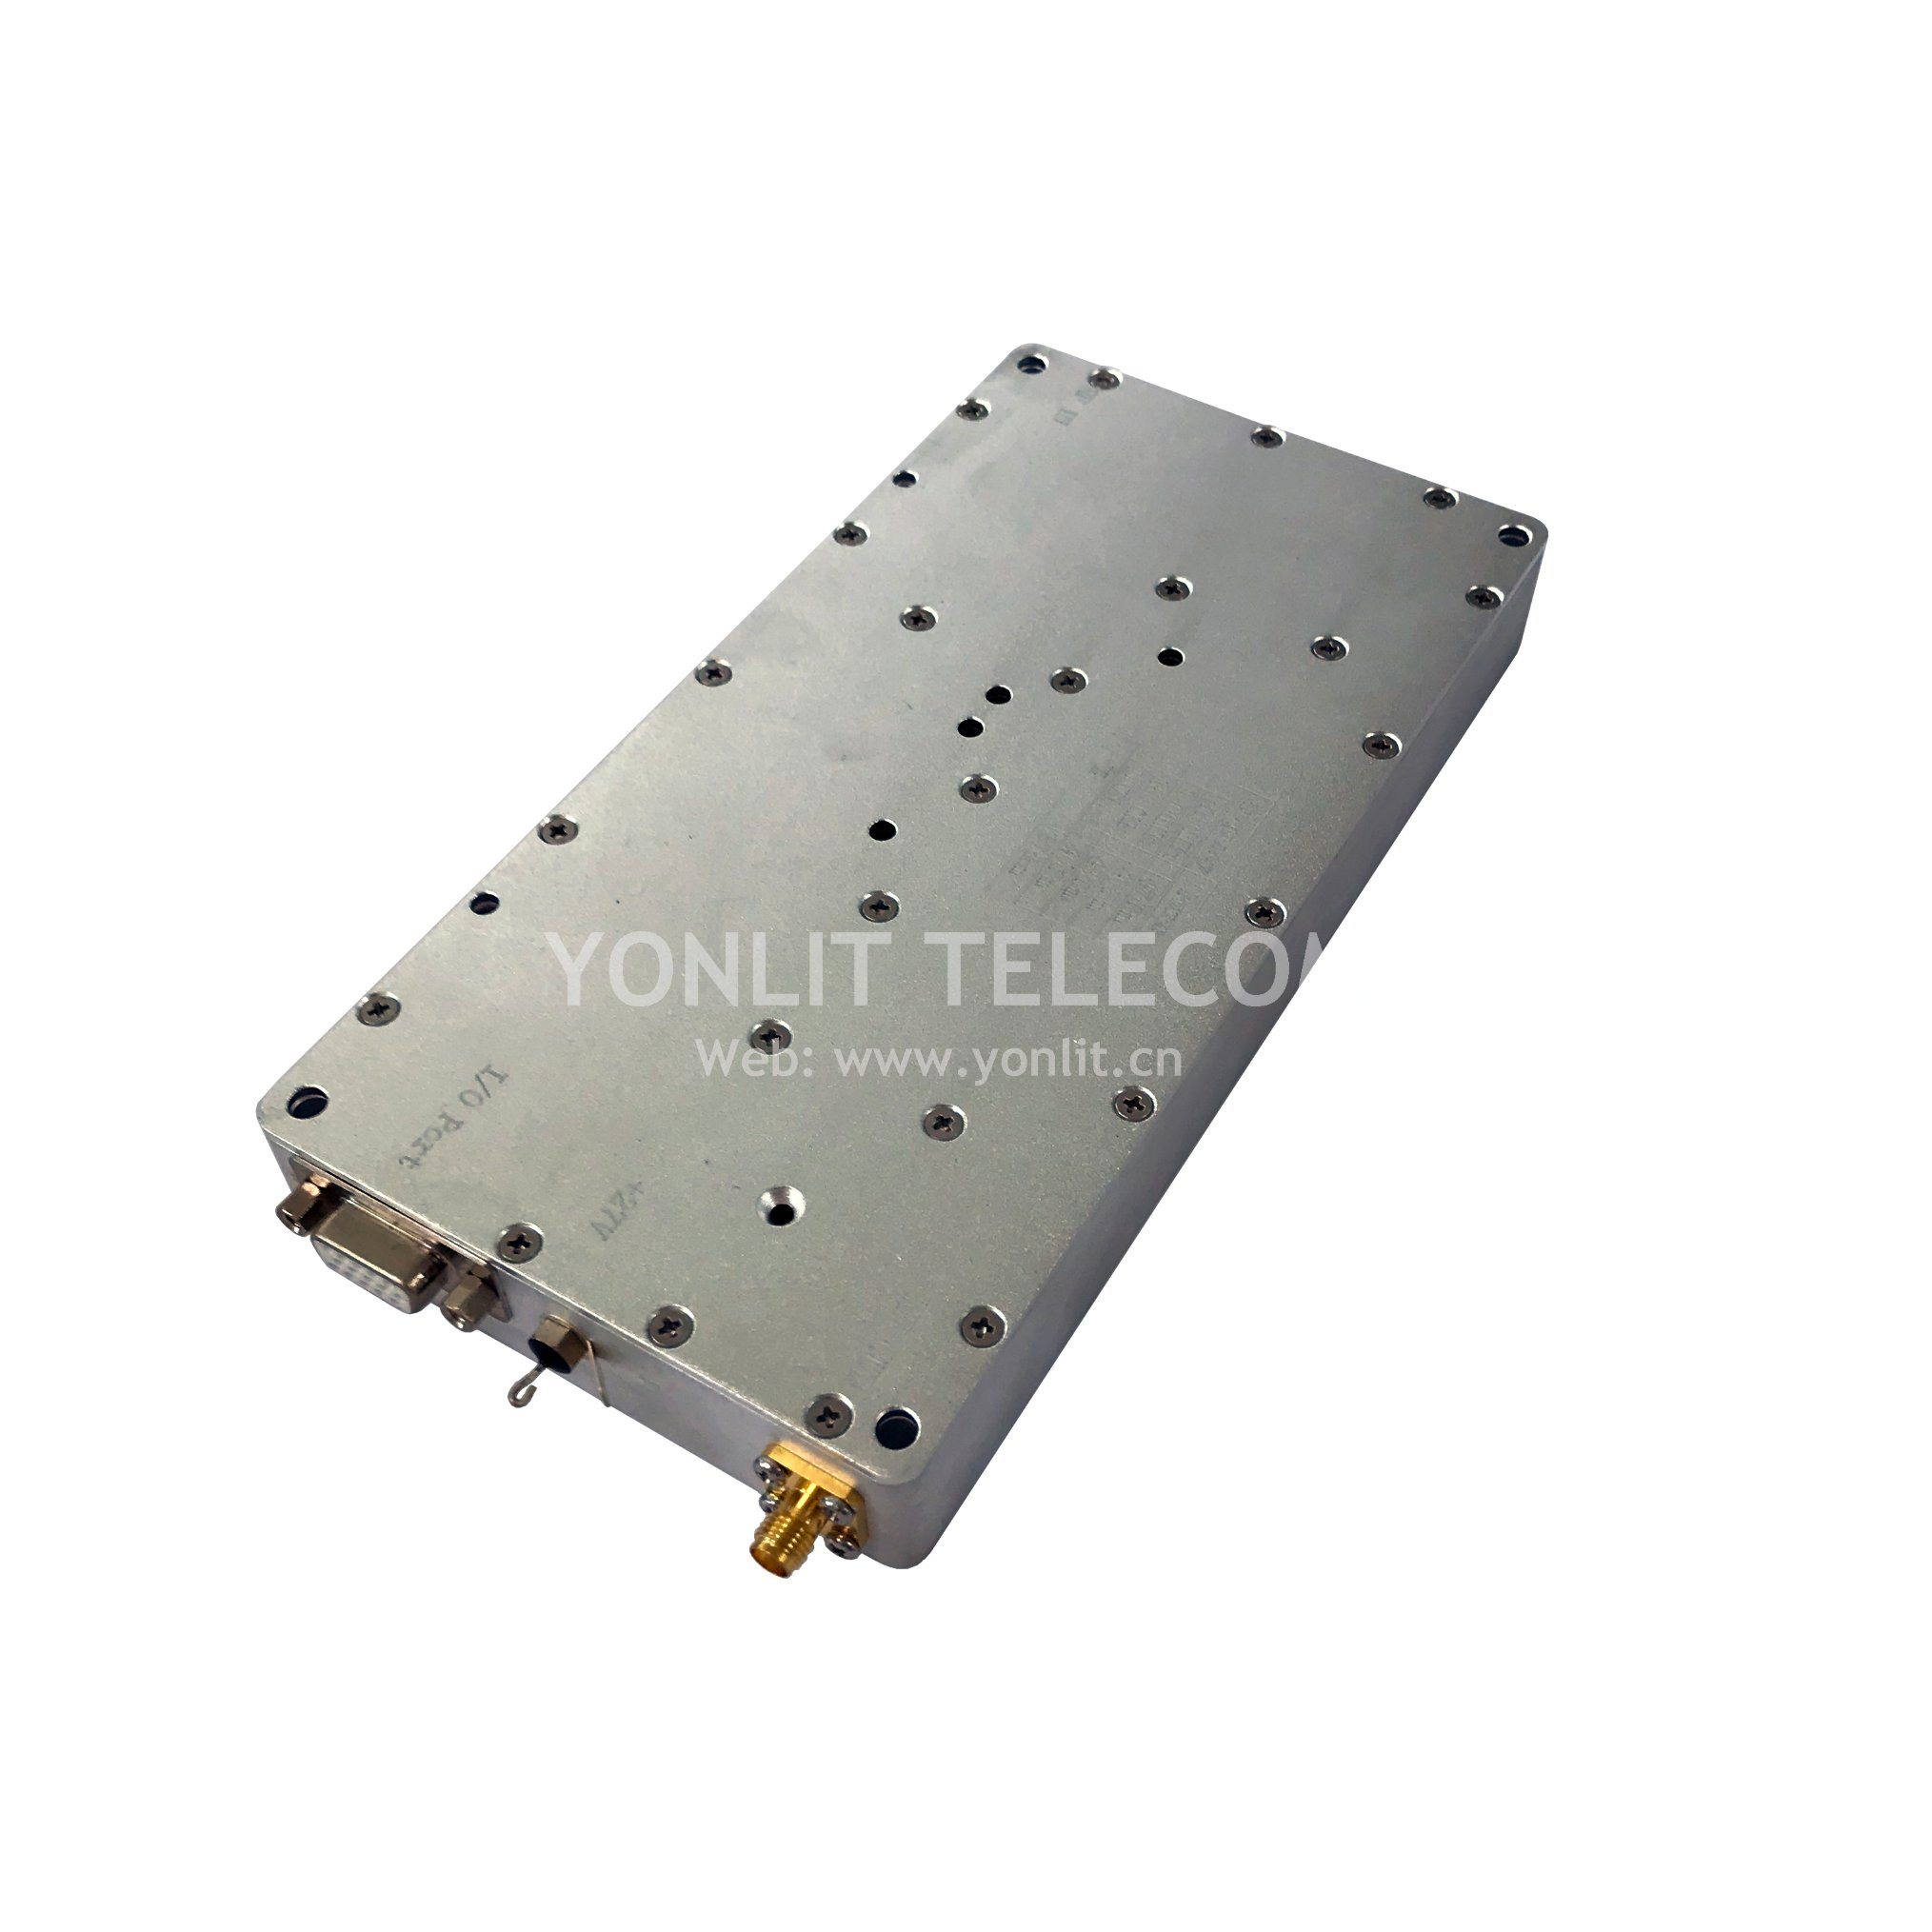 China 20w Dcs 1800mhz Mosfet Linear Rf Power Amplifier For Repeater Amp